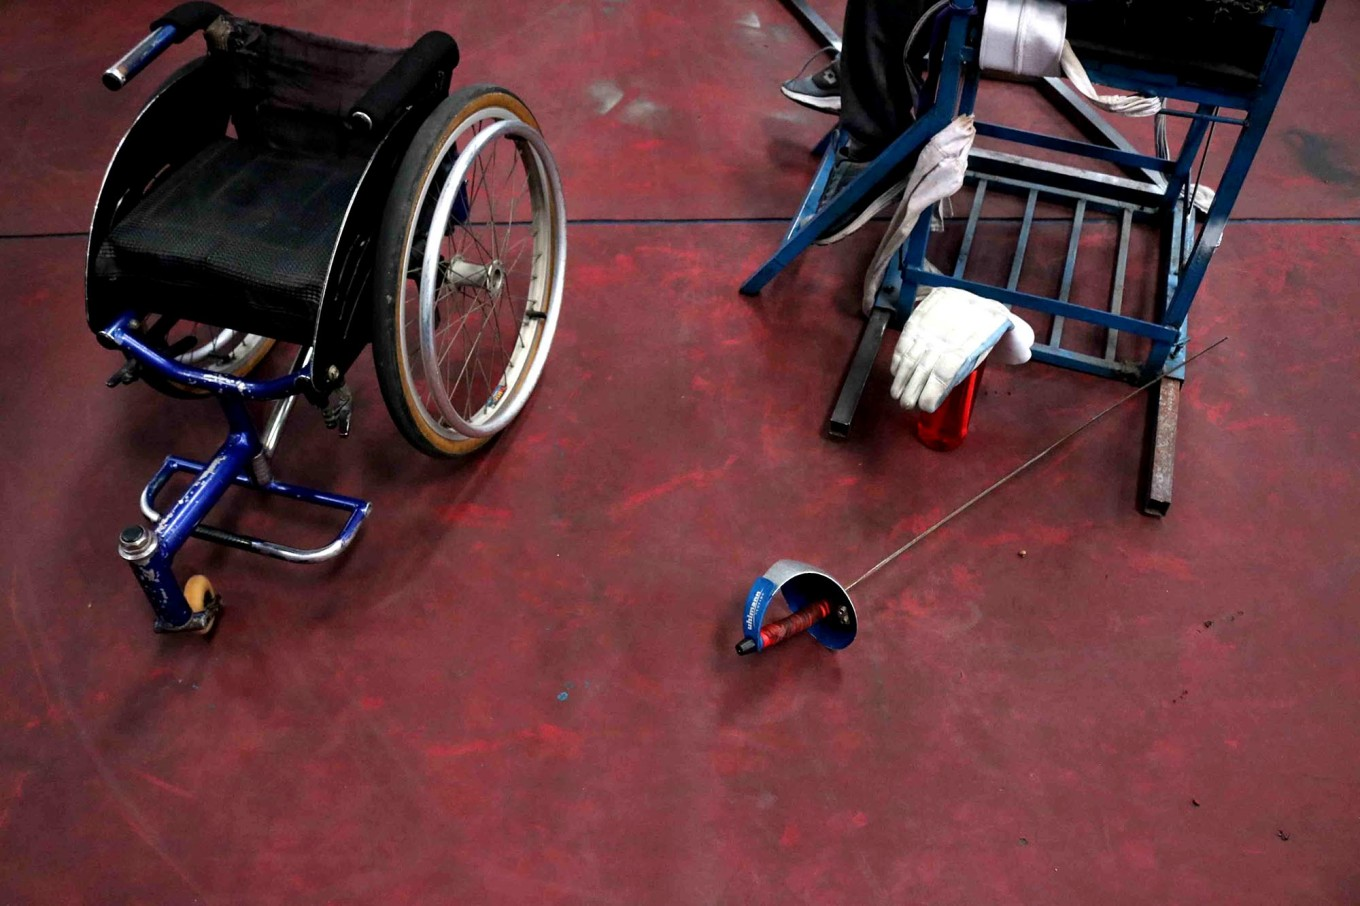 Wheelchair fencing equipment lies on the floor during a training session. JP/Maksum Nur Fauzan